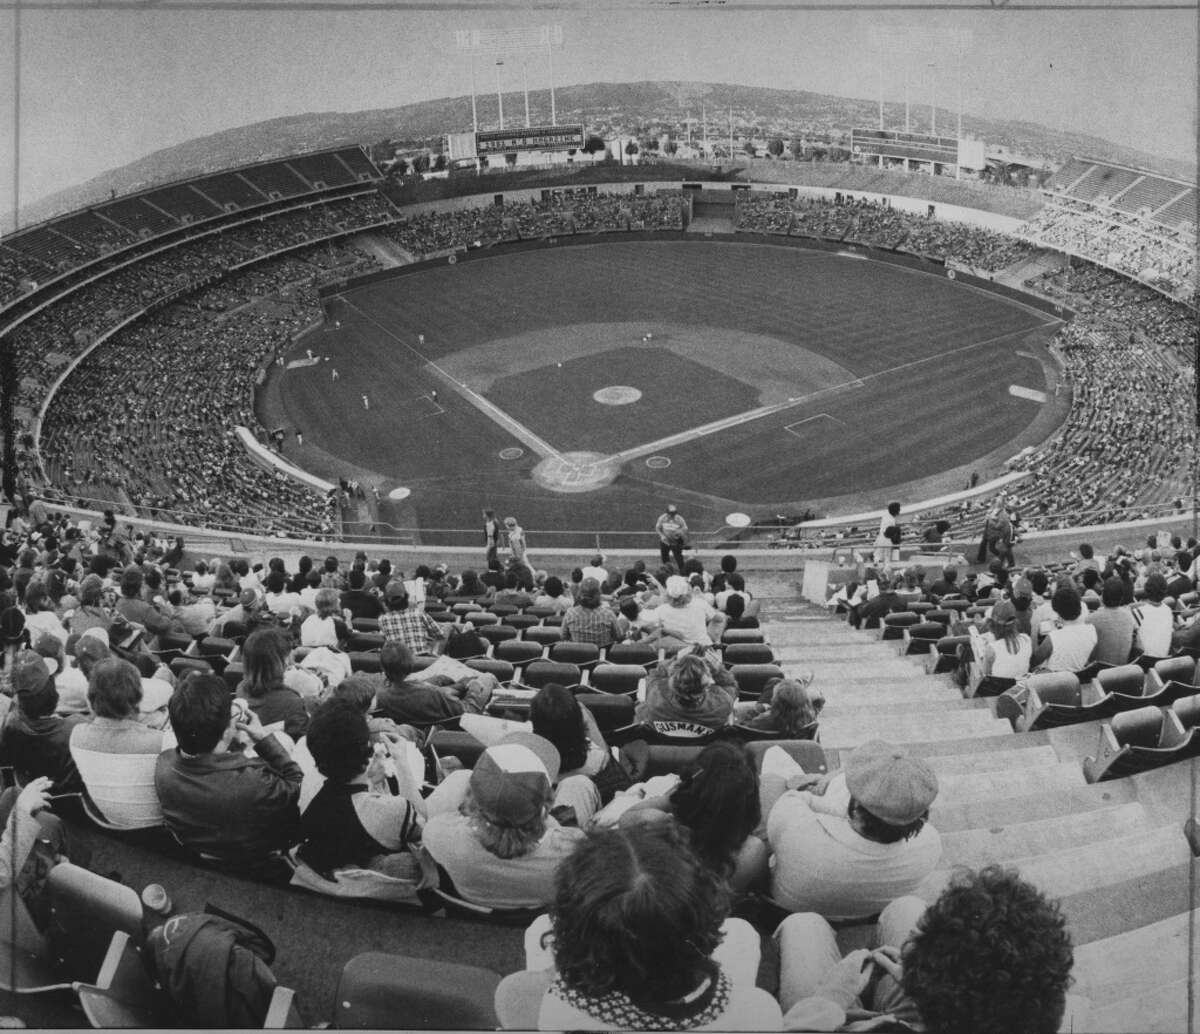 Oakland Athletics game April 1981 at the Oakland Coliseum Photo ran 05/11/1981